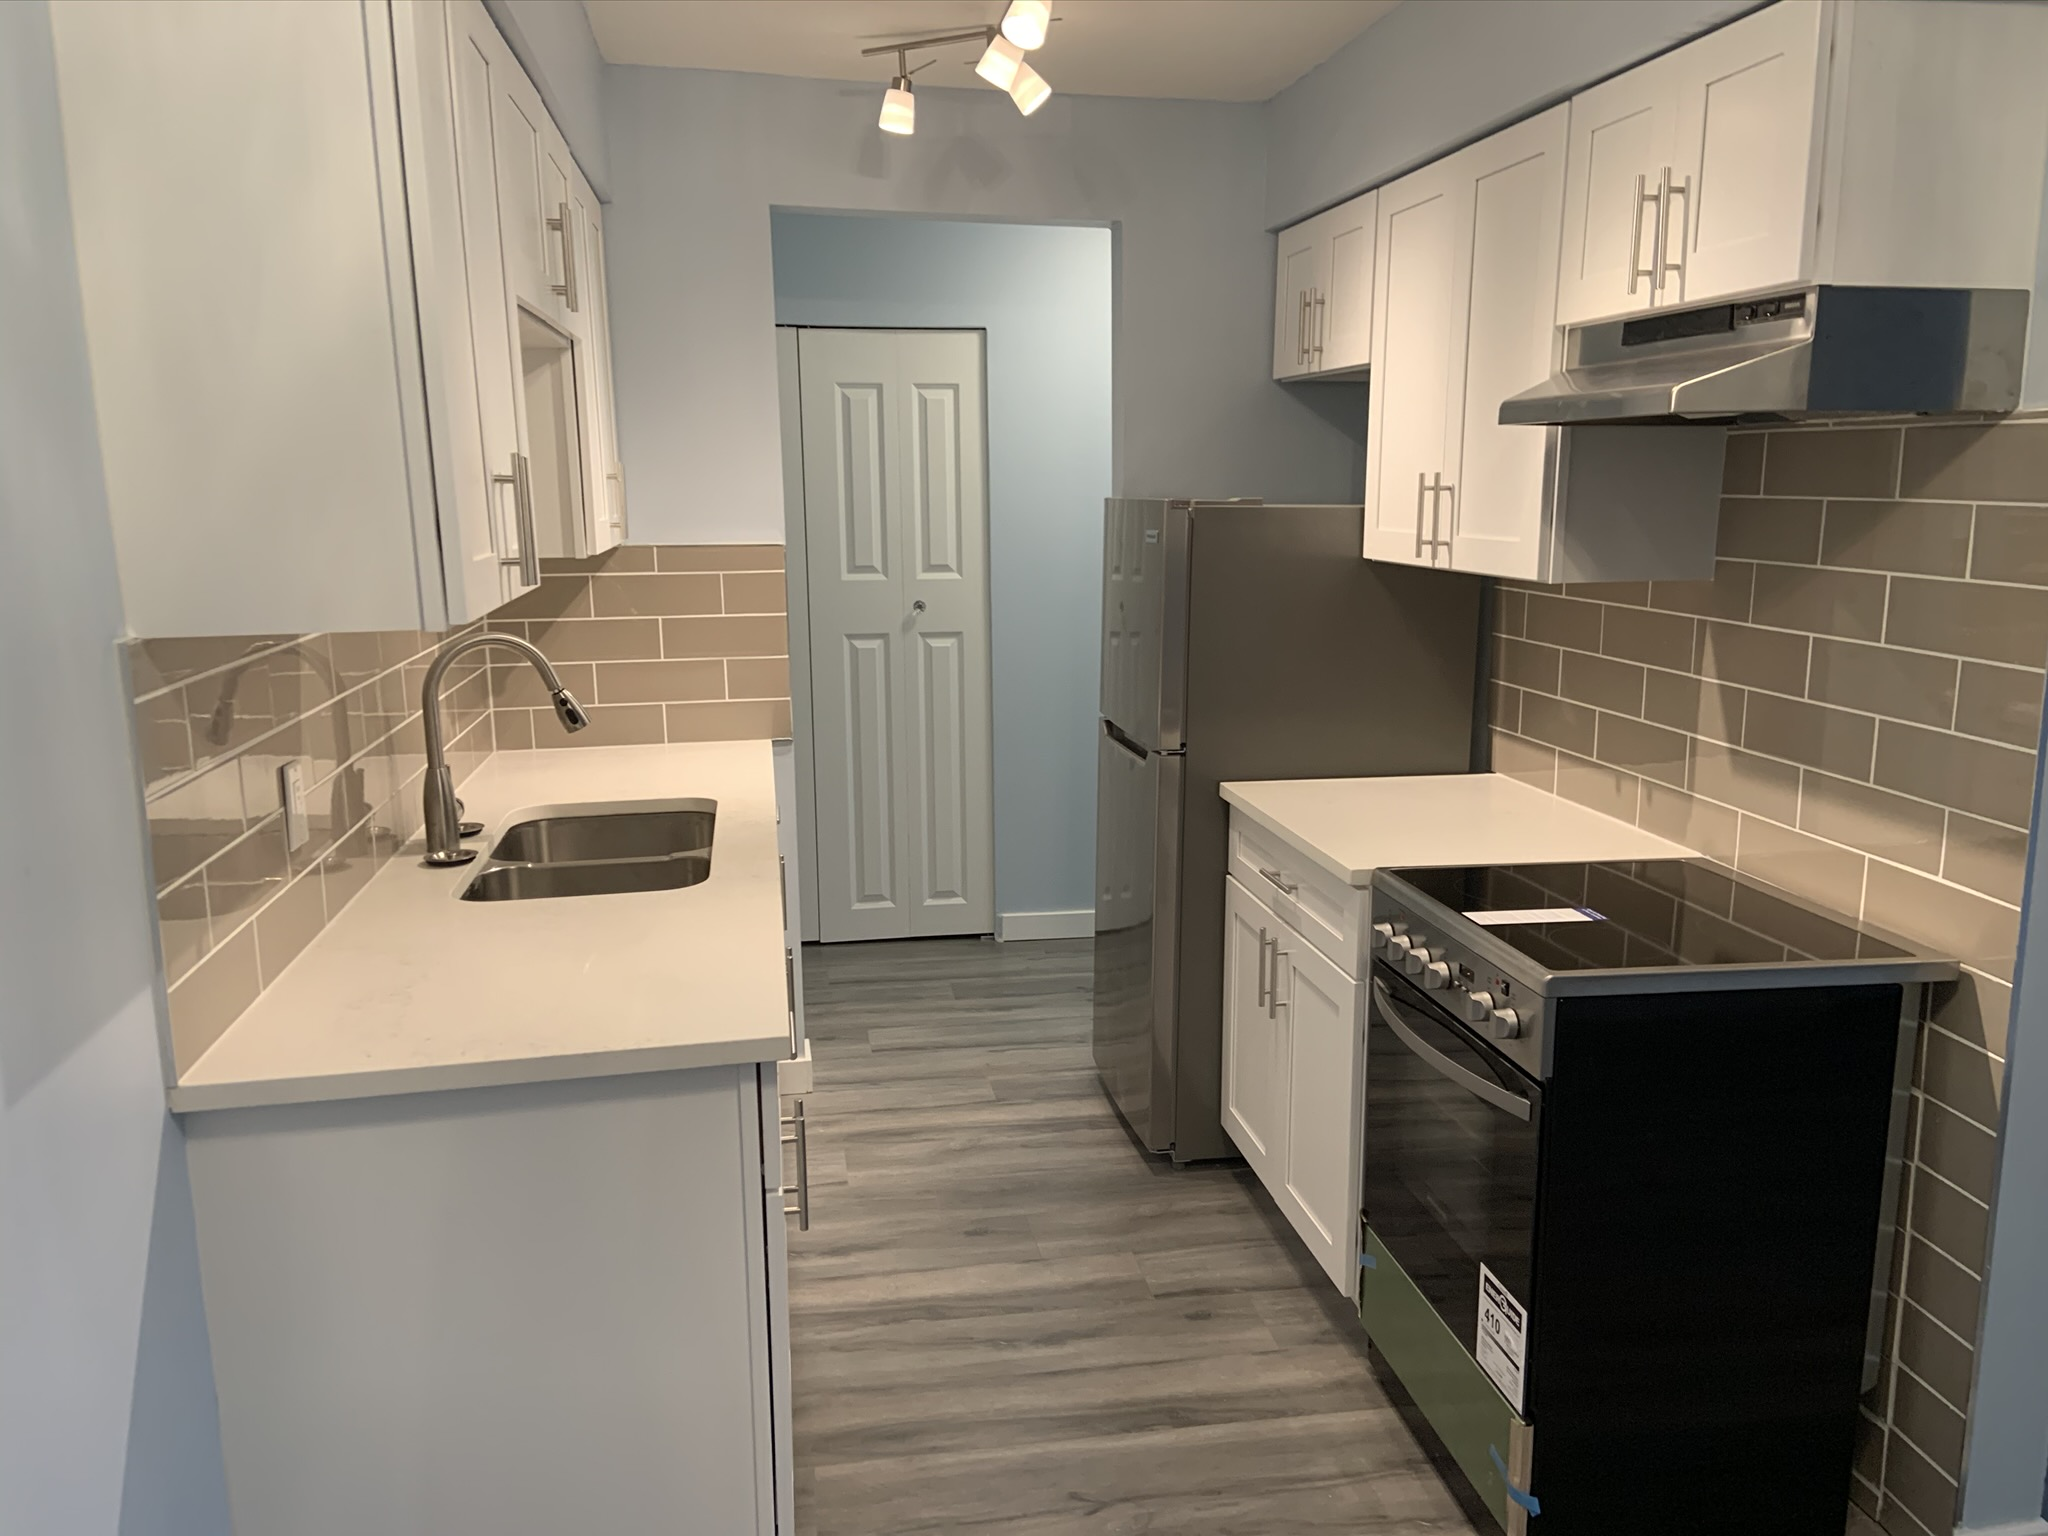 Renovation Complete! Stunning Refreshed Condo w/ DEN!